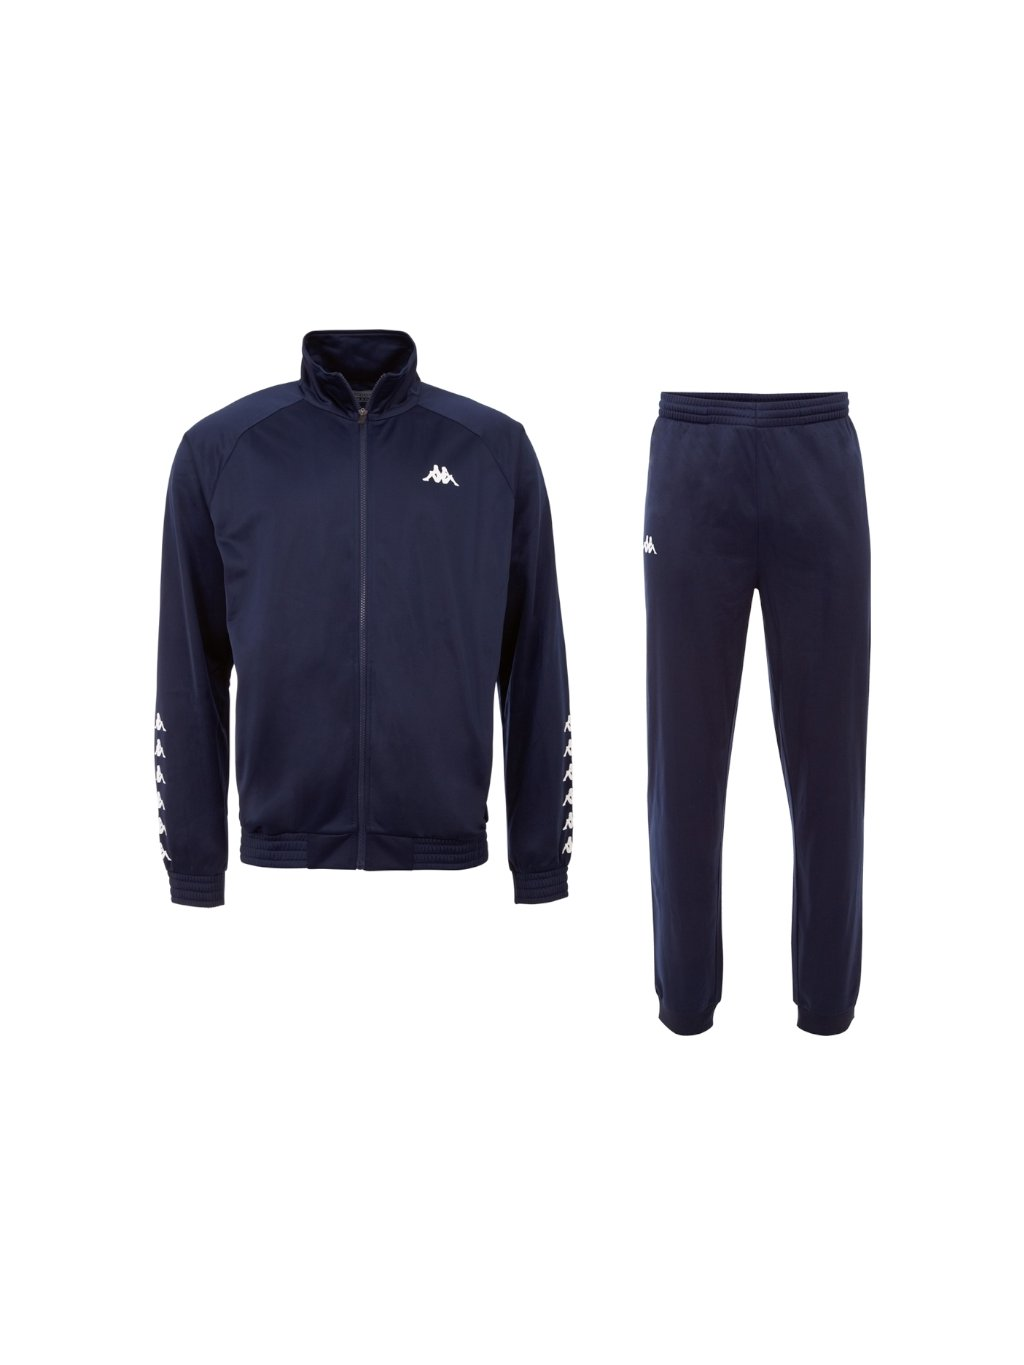 KAPPA TILL TRAINING SUIT